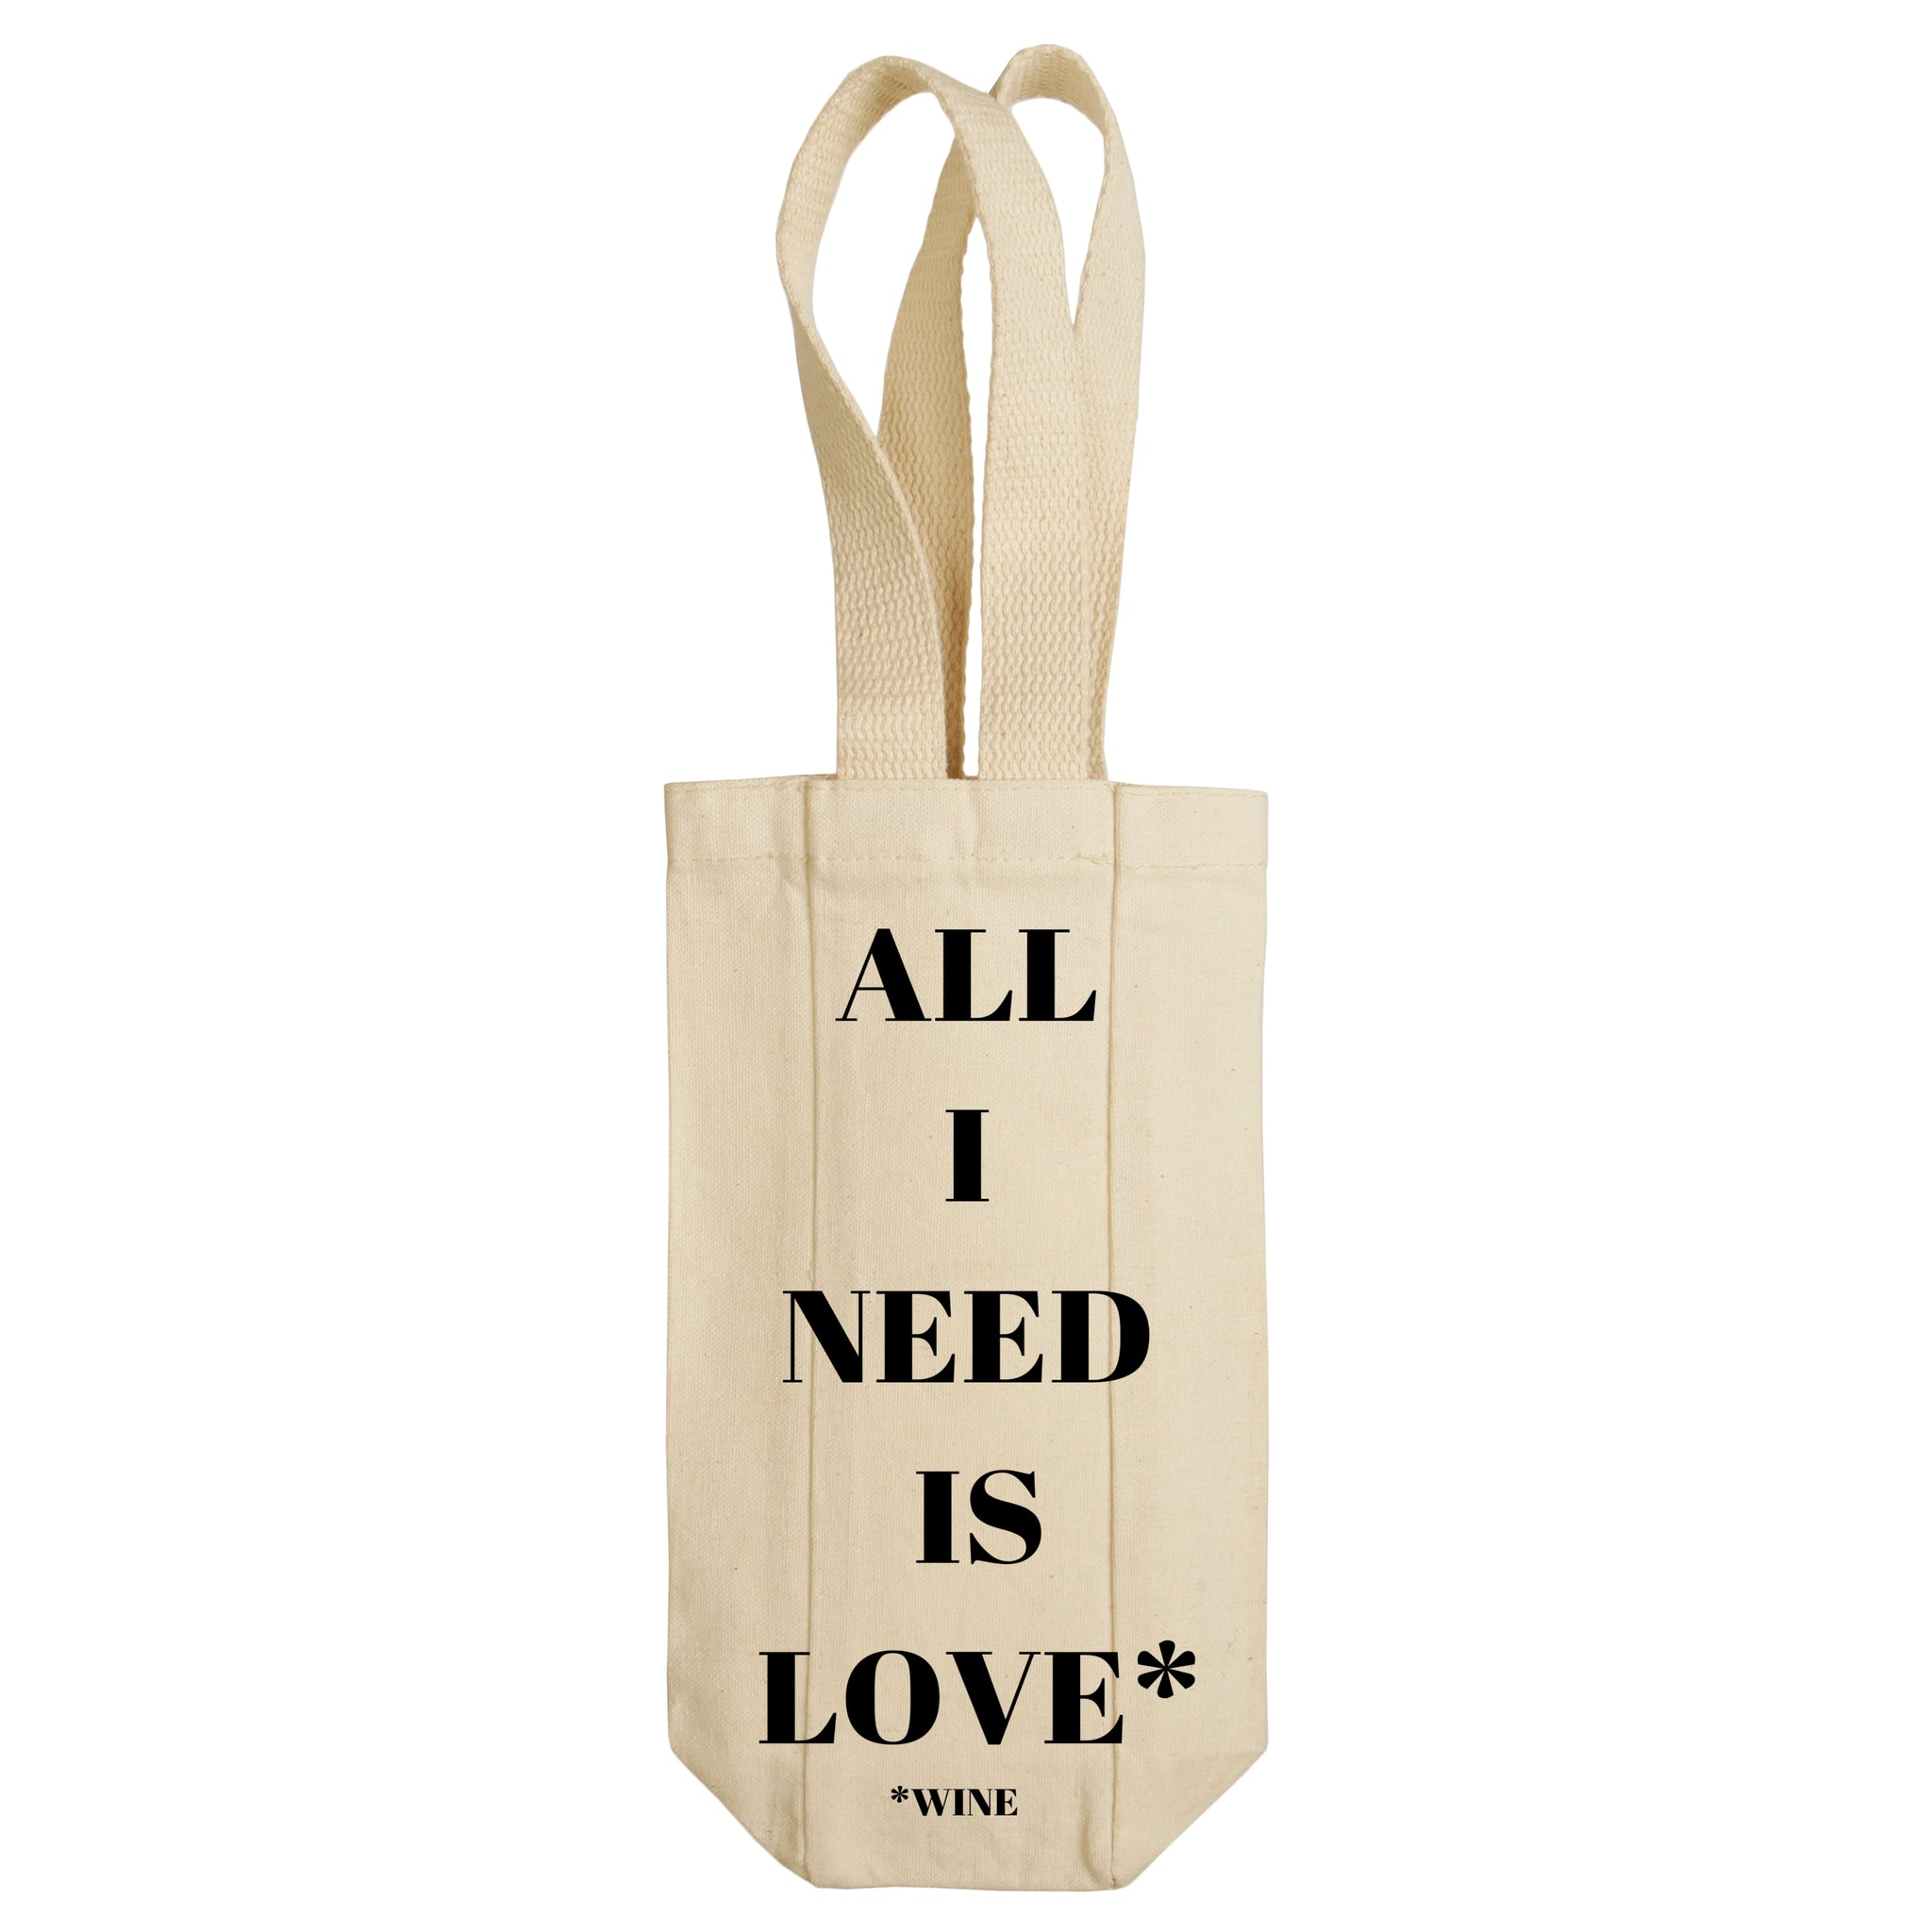 All I Need Is Love* (Wine*) Wine Tote with Handles